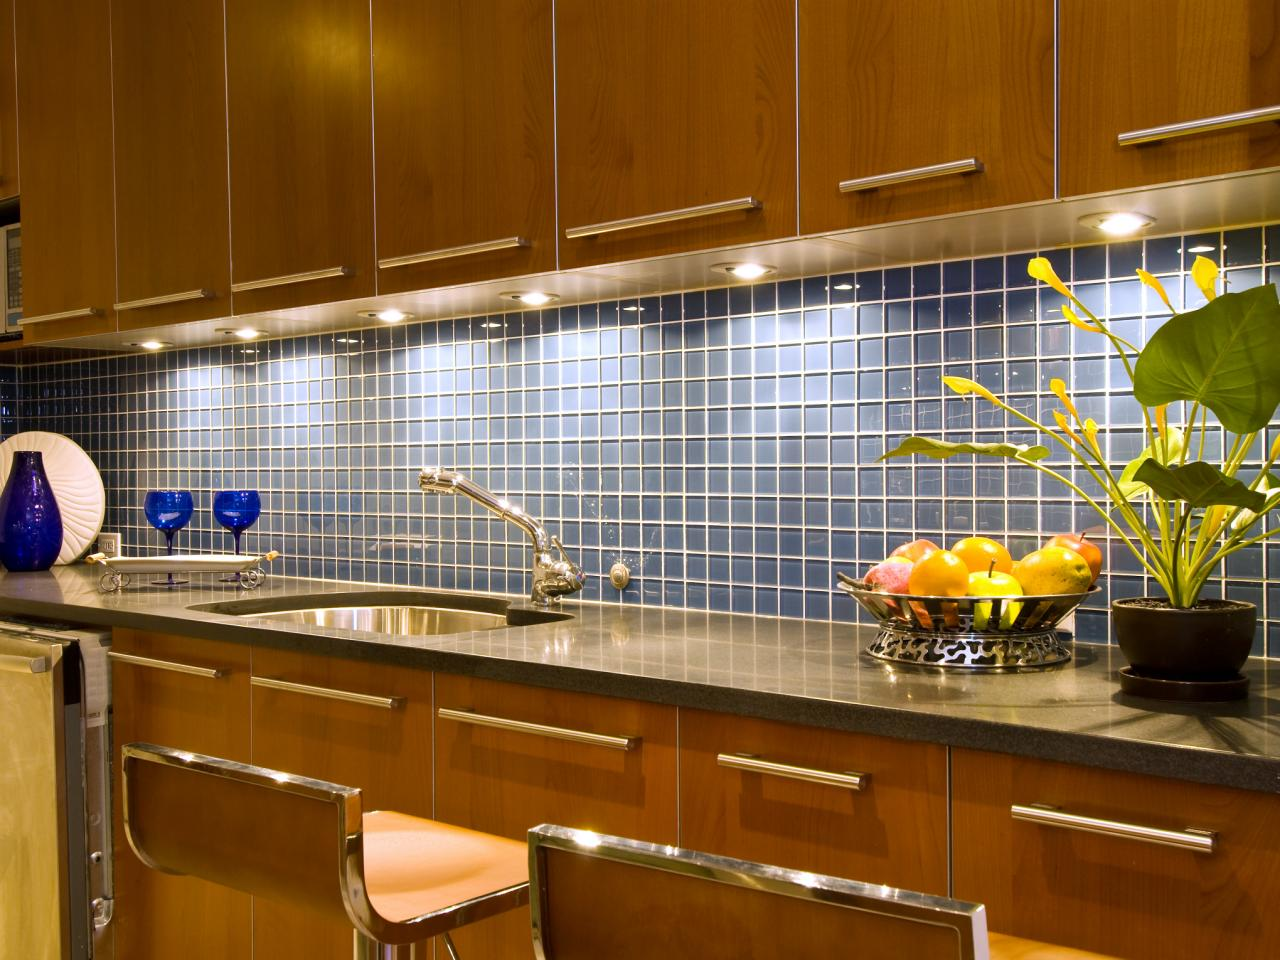 kitchen tiles design style your kitchen with the latest in tile QTNOAFG